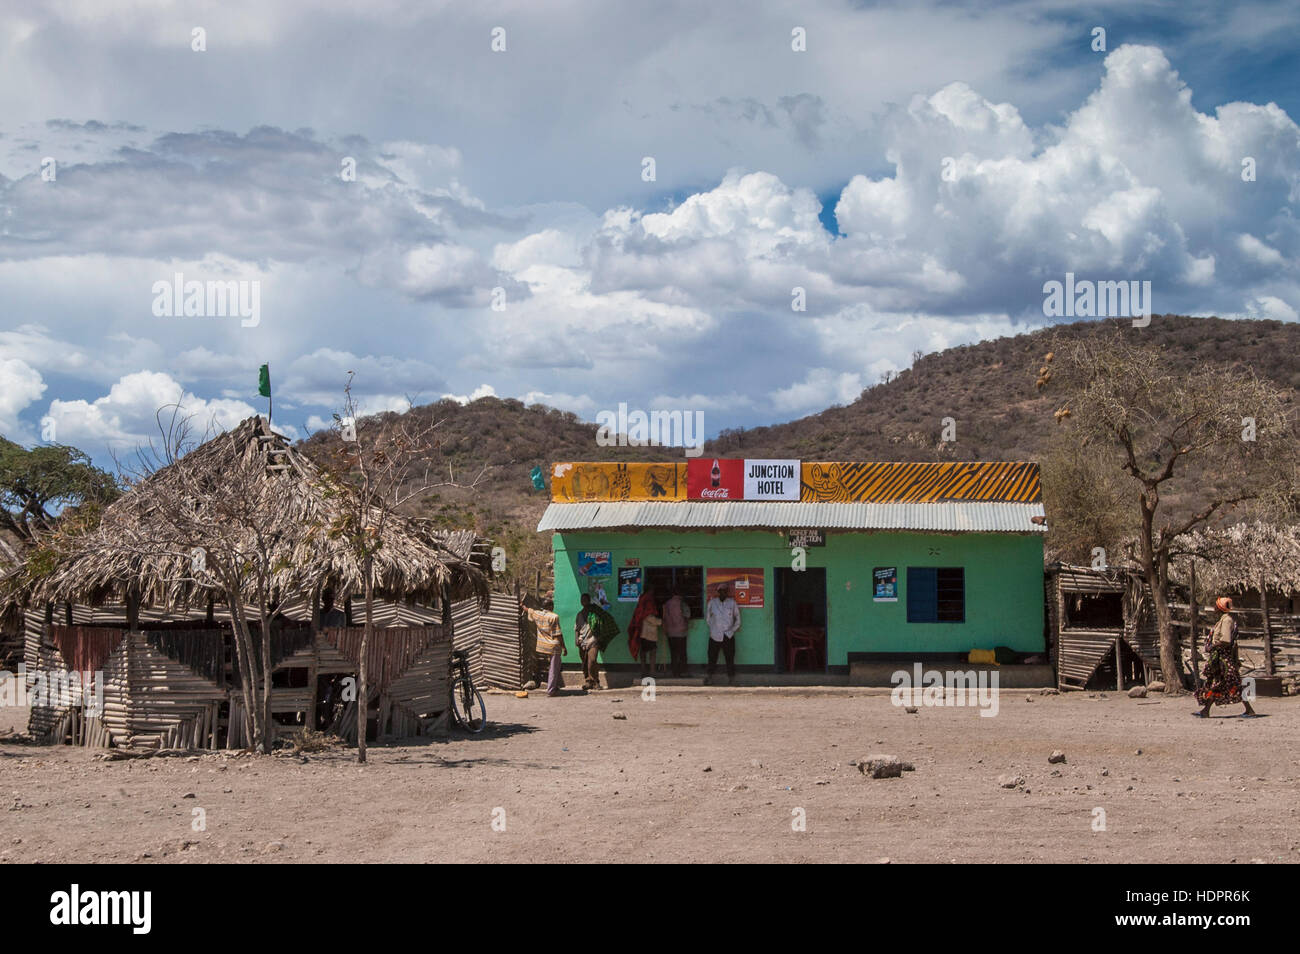 People standing outside a building with grocery and bar, Mangola, Lake Eyasi, Manyara region, Tanzania - Stock Image